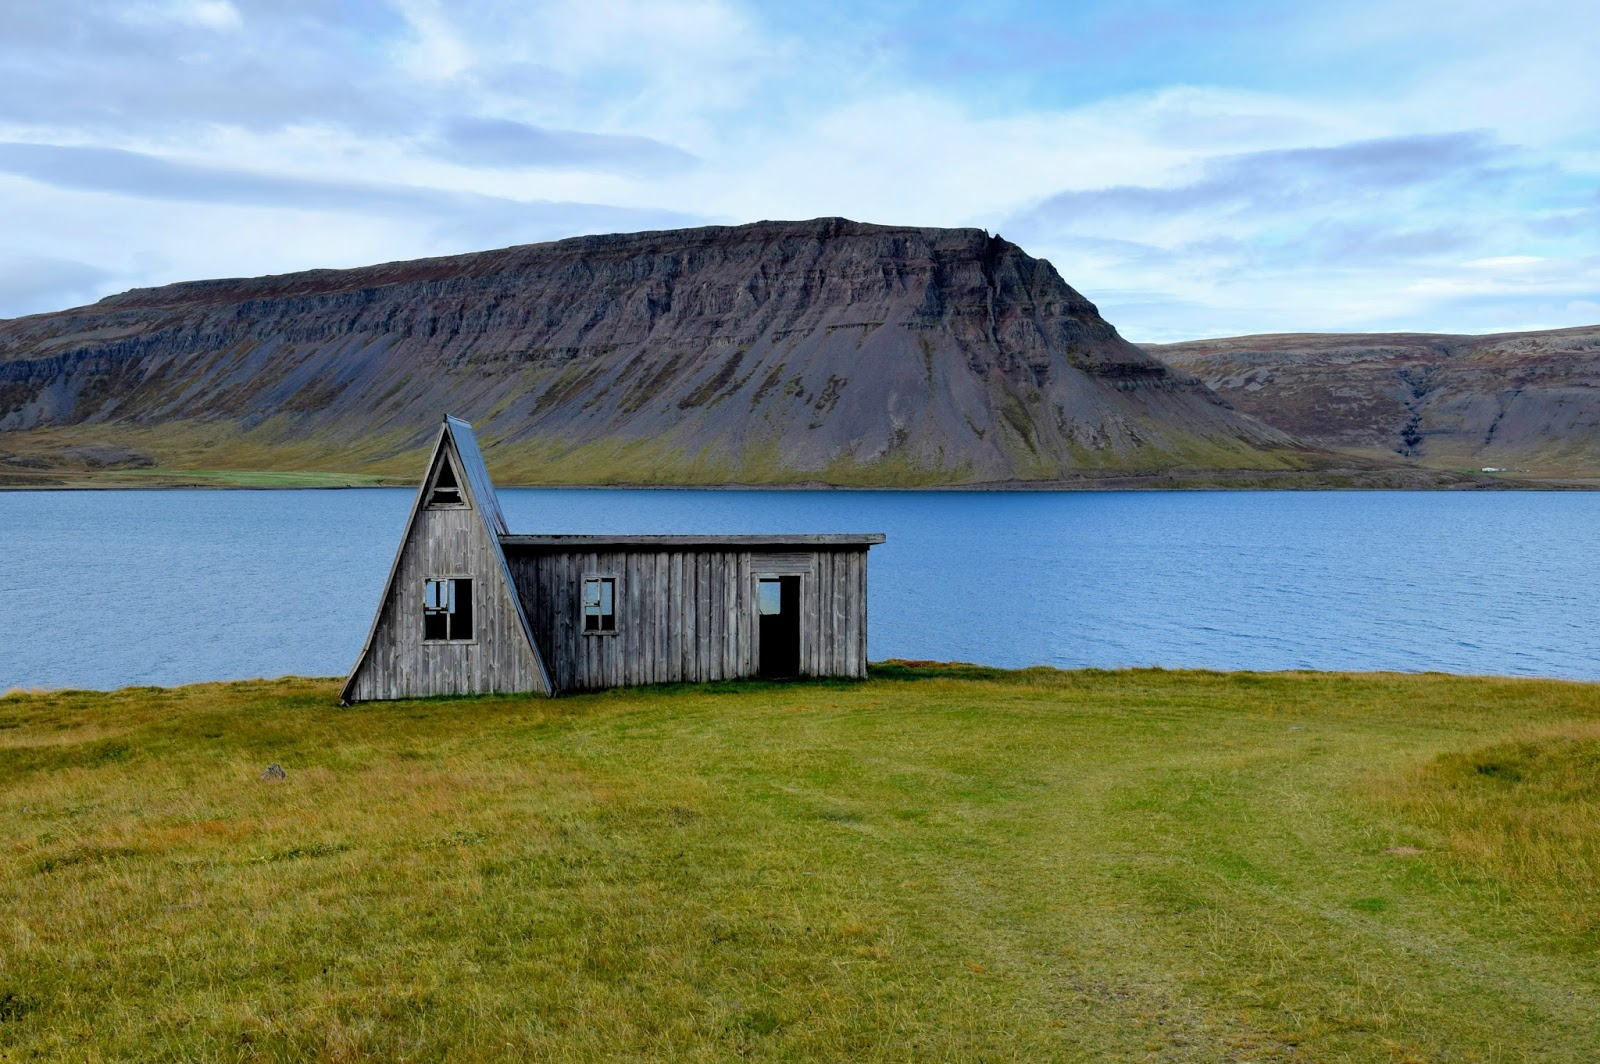 ^ little sheep barn before reaching Bíldudalur (taken a different day but still in the Westfjords)